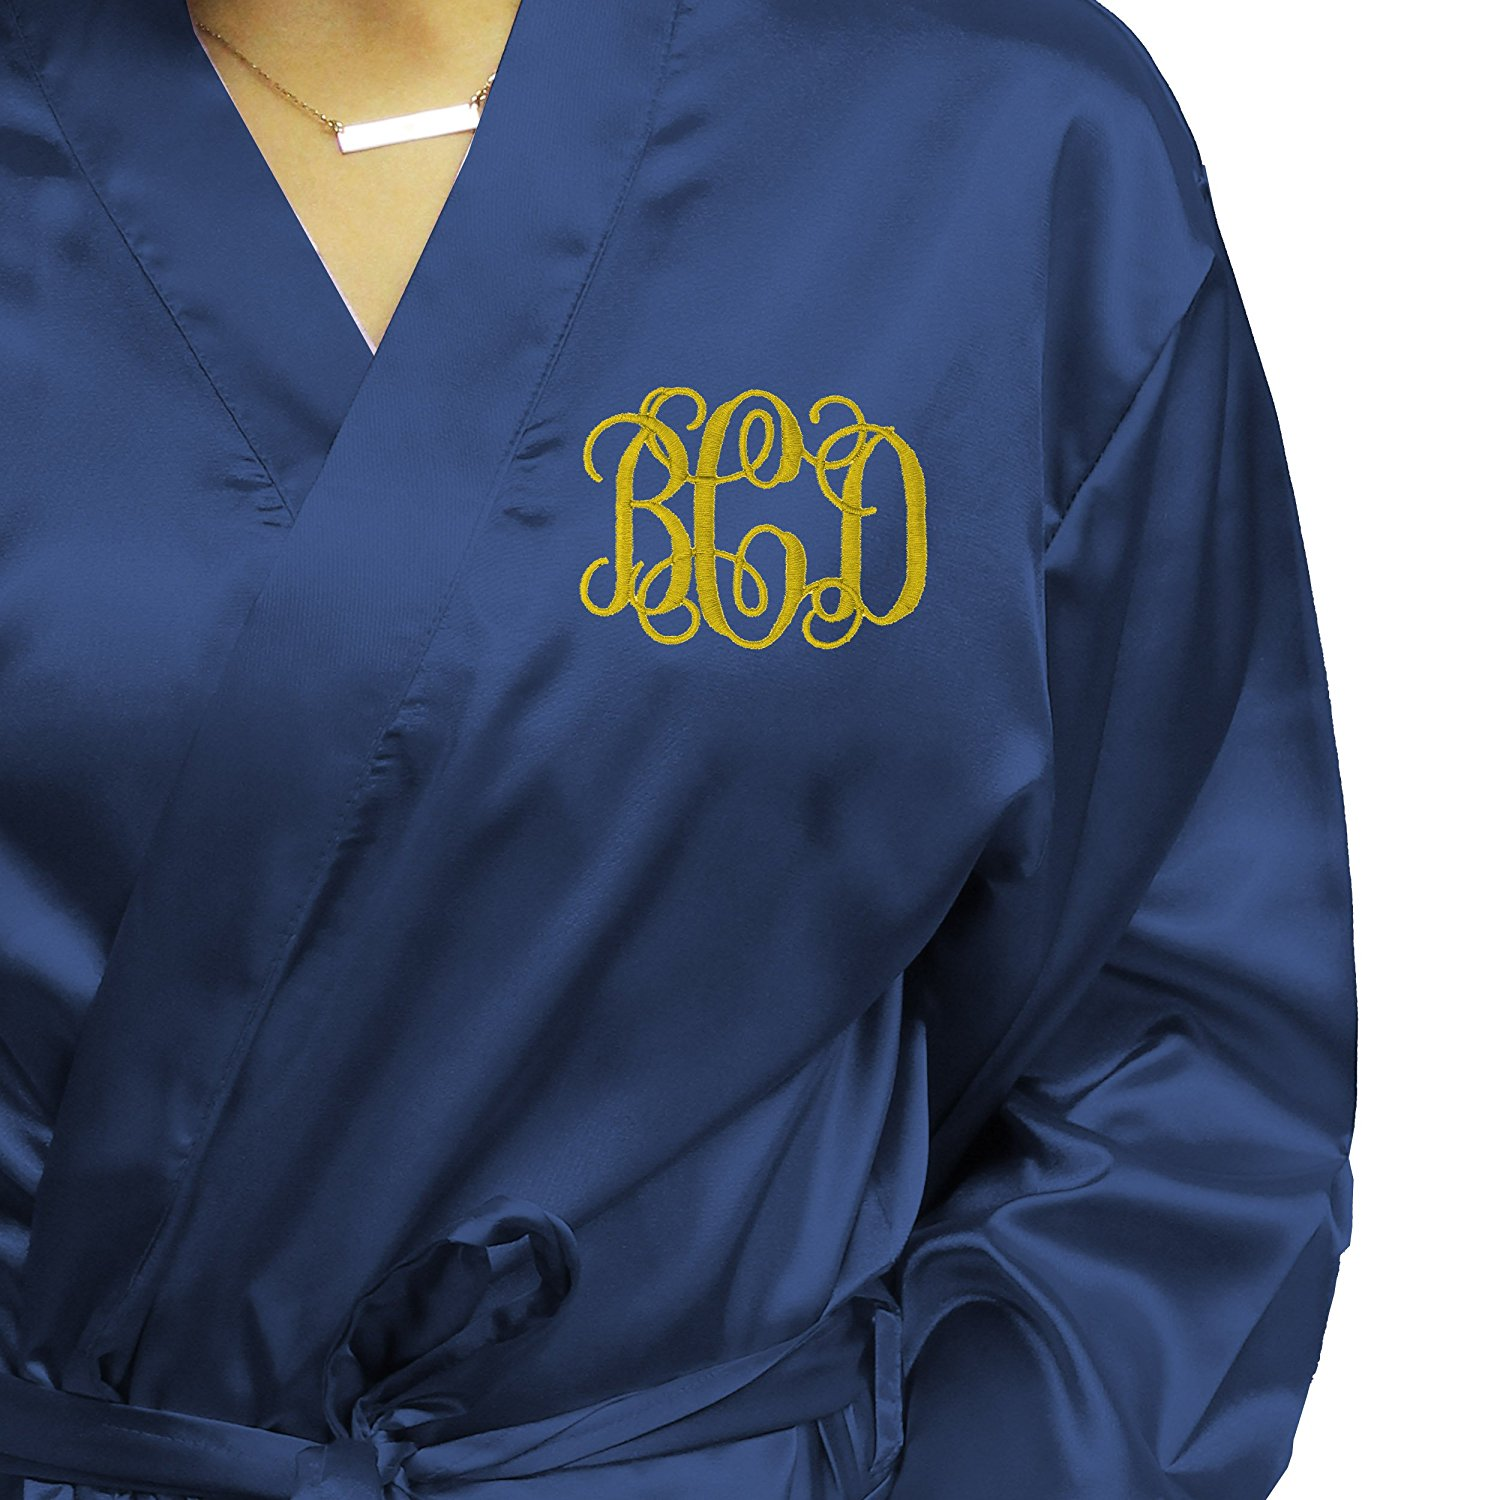 3ec832b0c8 Get Quotations · Monogrammed Satin Bridesmaid Kimono Robe Gift - Wedding  Bridal Party Robes - Women s Bathrobe - Custom